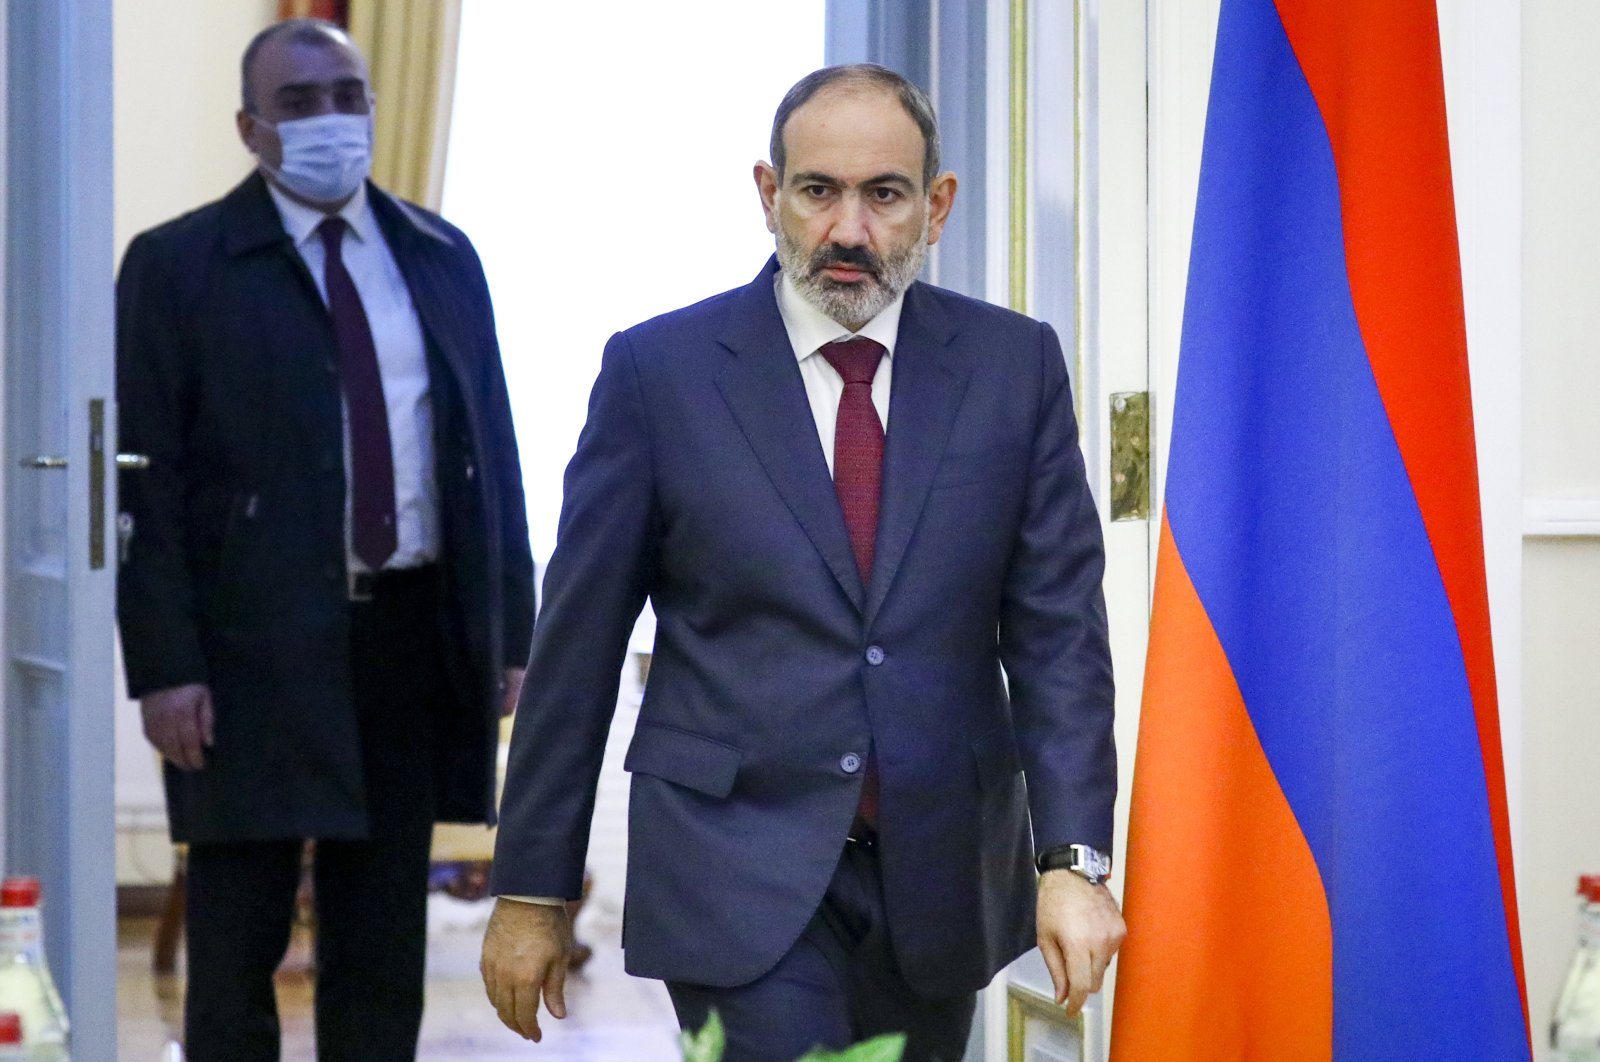 Armenia's Prime Minister Nikol Pashinian enters a hall for a meeting with Russian Foreign Minister Sergey Lavrov in Yerevan, Armenia, Saturday, Nov. 21, 2020. (Russian Foreign Ministry Press Service via AP)